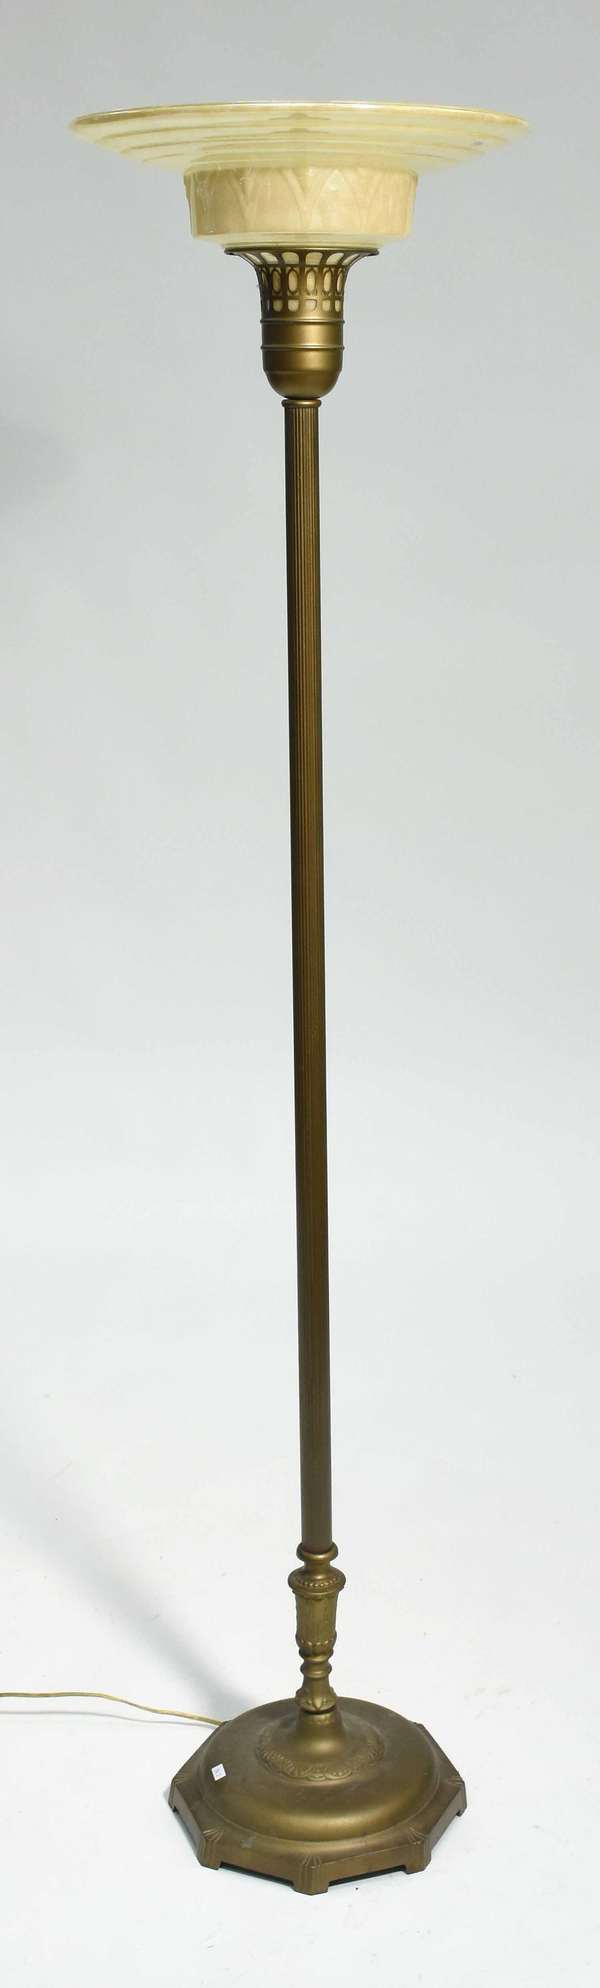 """Art Deco floor lamp with iron base and yellow metallic glass shade, 65""""H x 16"""" dia. Condition: shade with chipping to lower rim, not visible when mounted"""